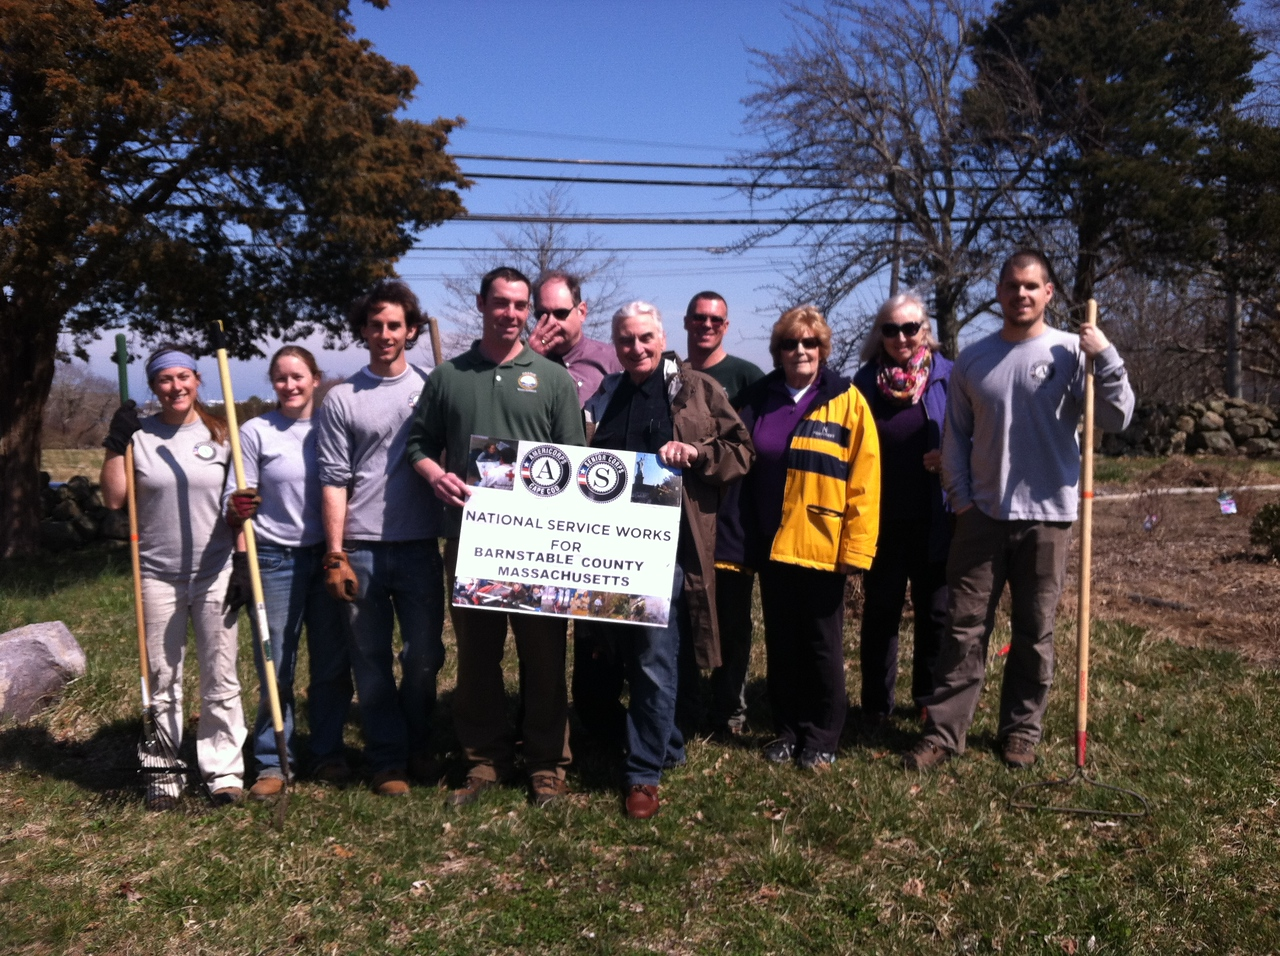 Barnstable, MA. Corporation for National and Community Service Photo.